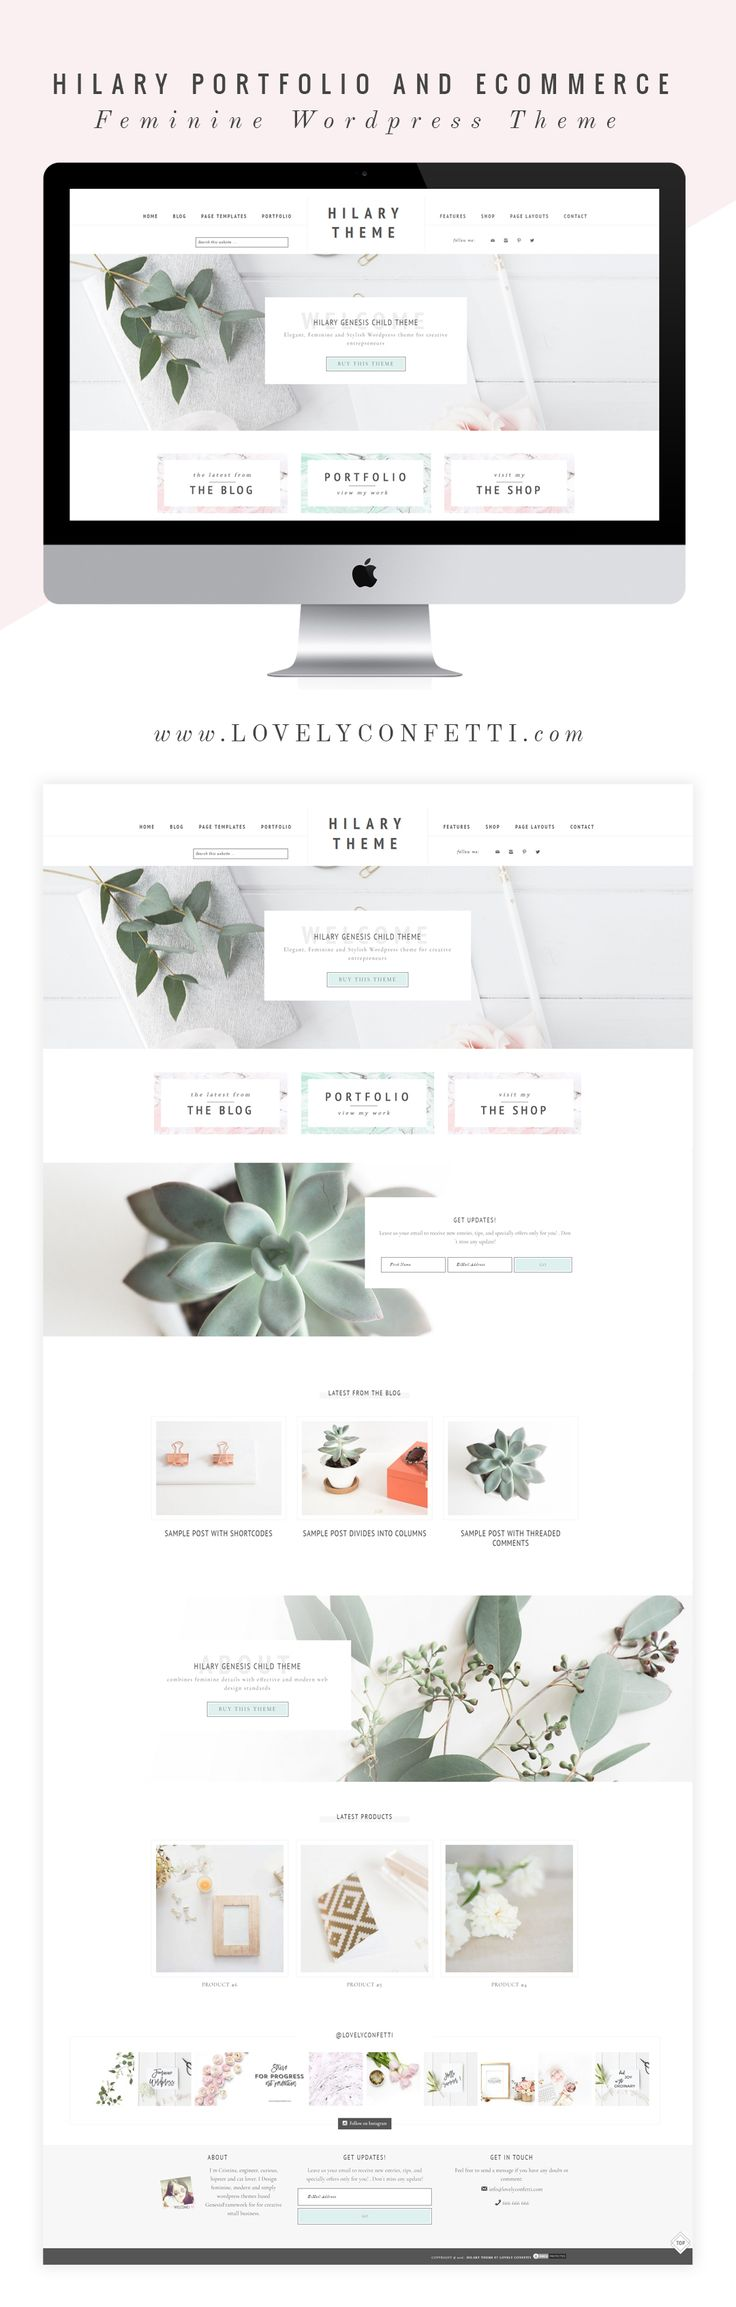 introducing-hilary-new-feminine-wordpress-theme-full-screen-lovely-confetti-wordpress-themes